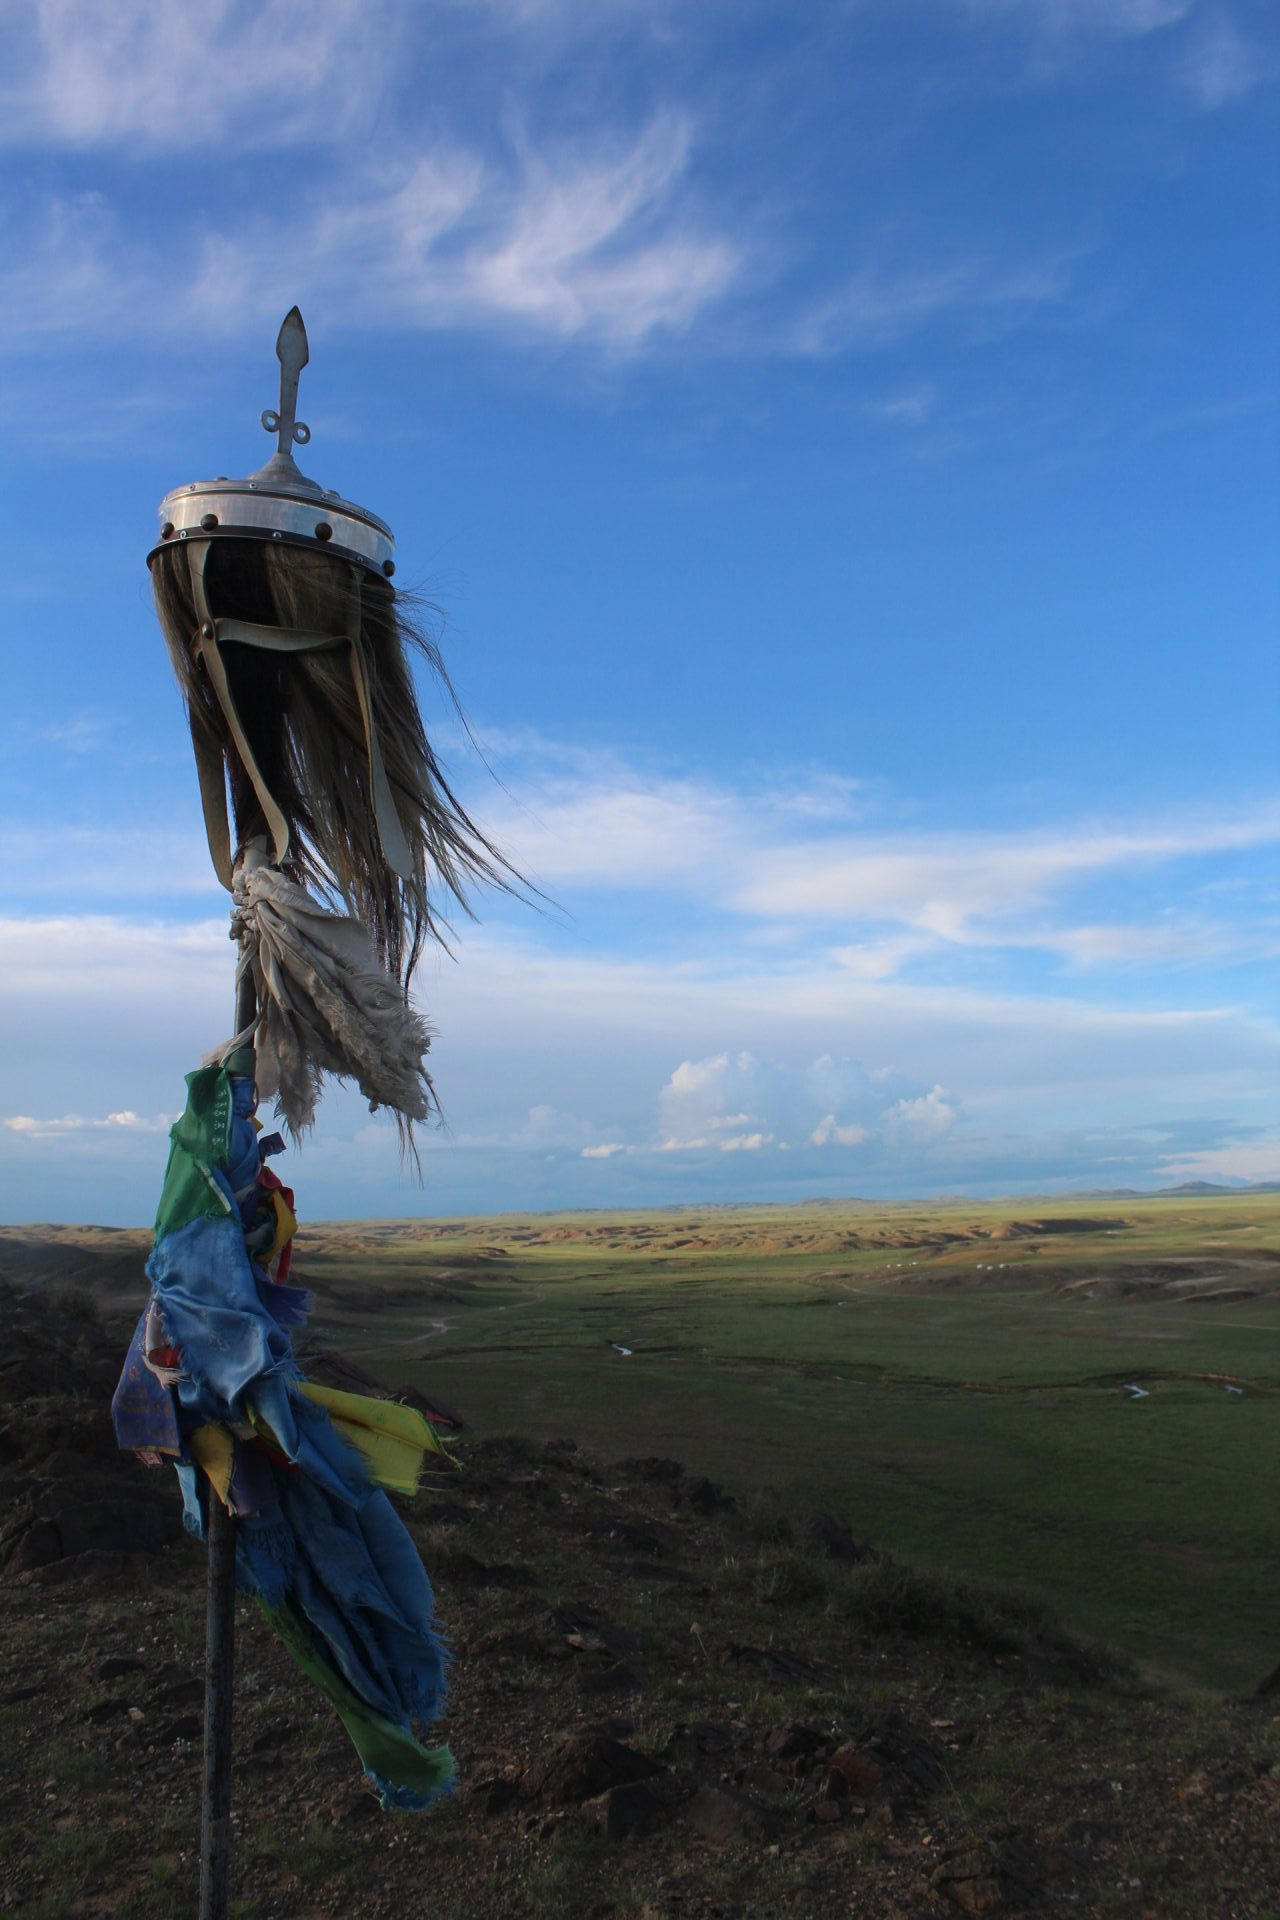 A horse-hair banner adorns a hillside monument in central Bayankhongor province, Mongolia. (Credit: William Taylor)